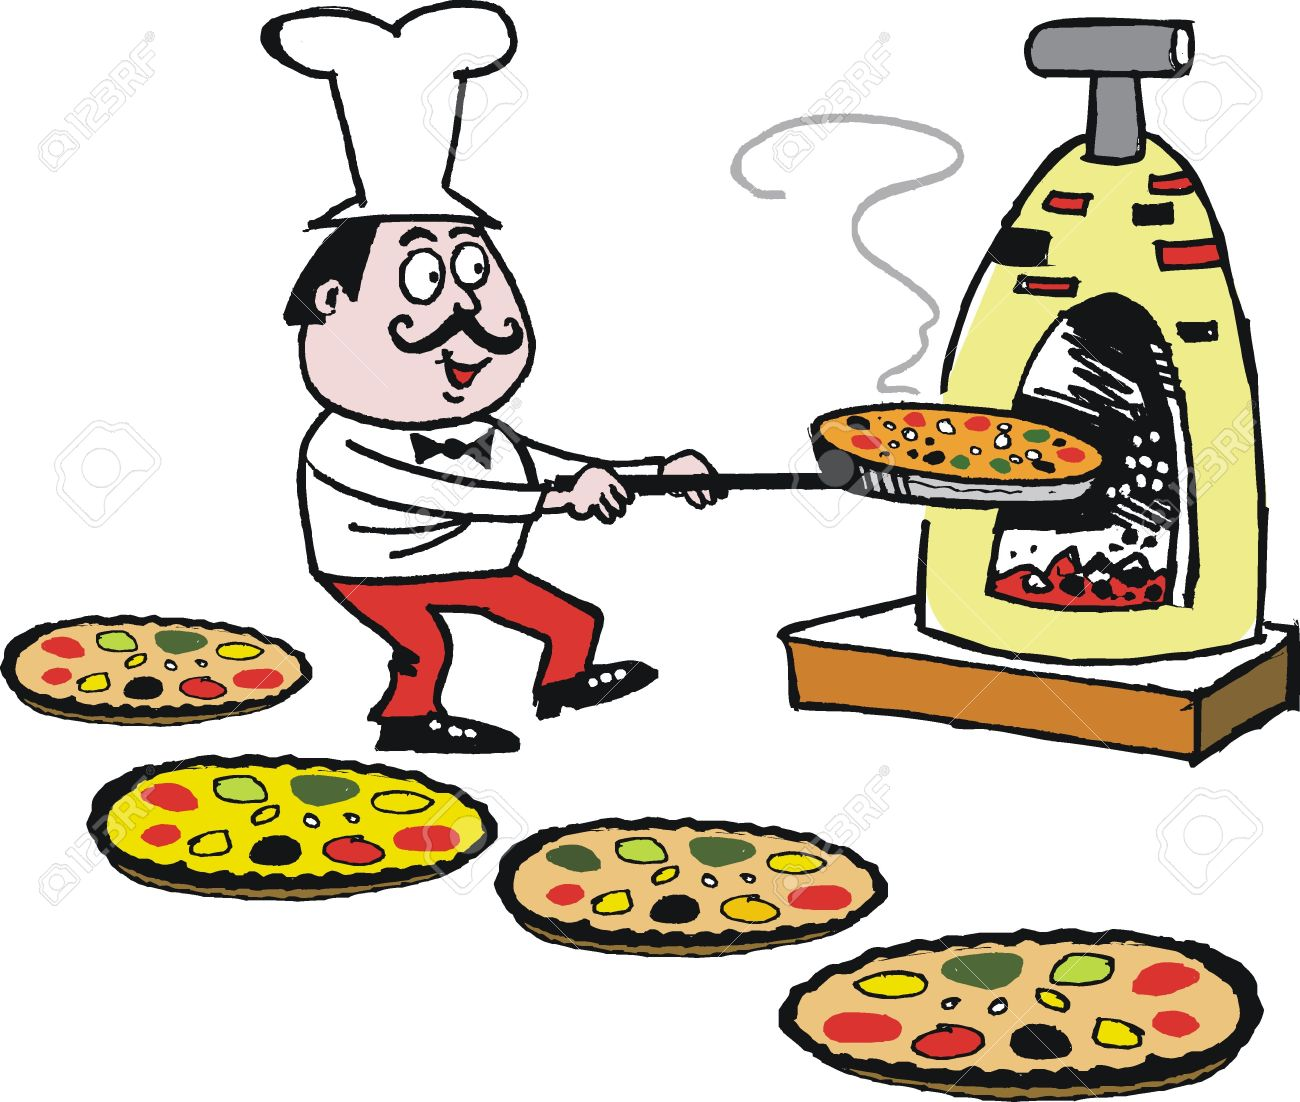 Pizza Chef Vector Vector Cartoon of Chef Making